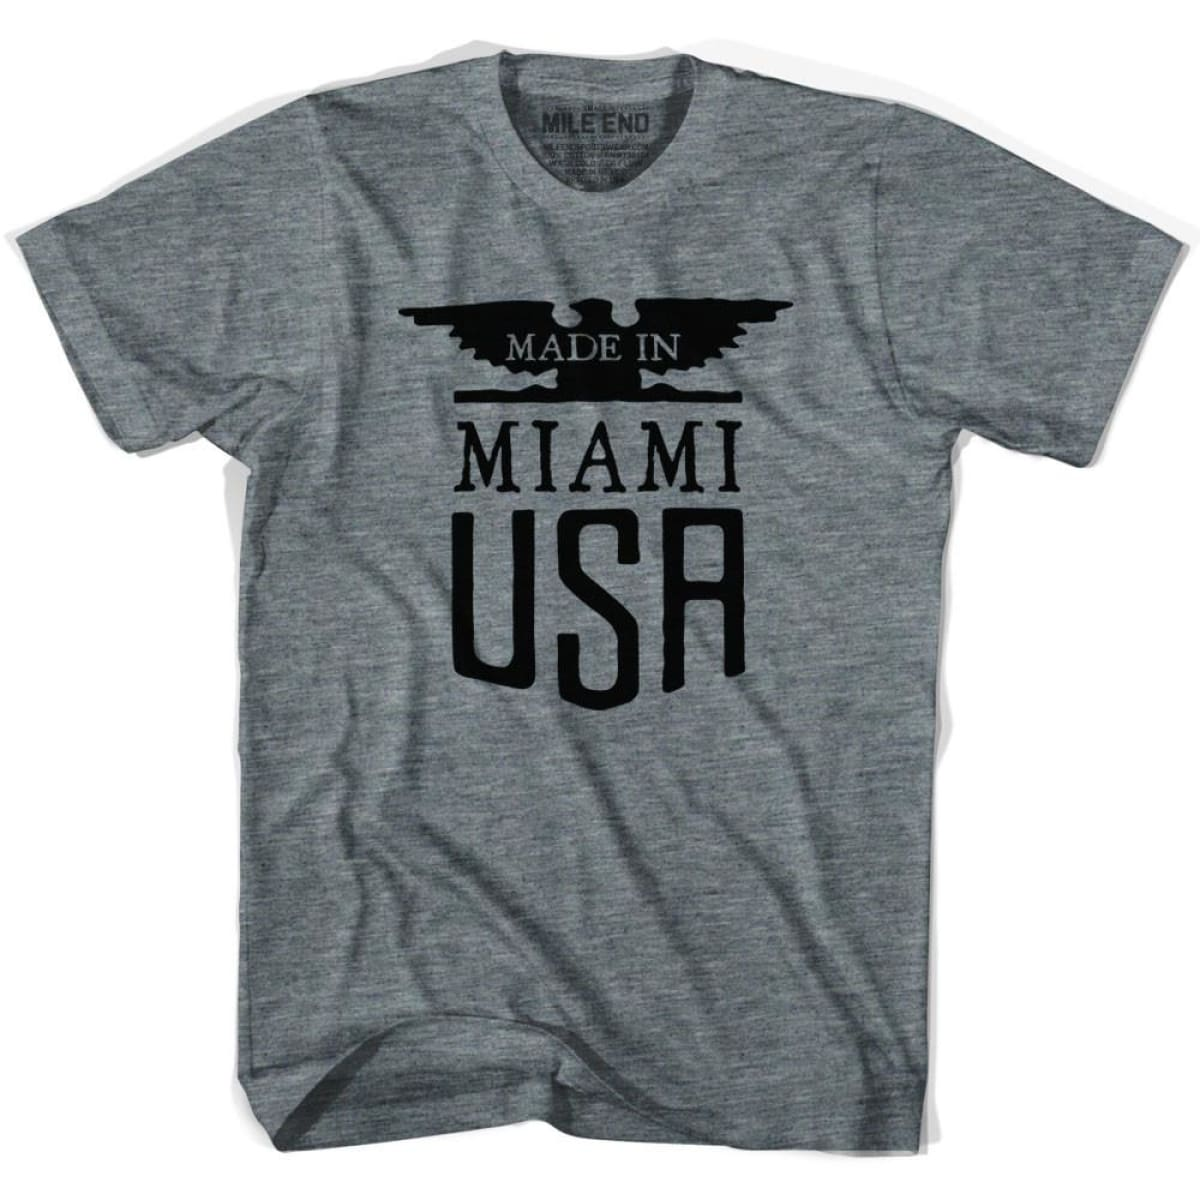 Made In USA Miami Vintage Eagle T-shirt - Athletic Grey / Youth X-Small - Made in Eagle